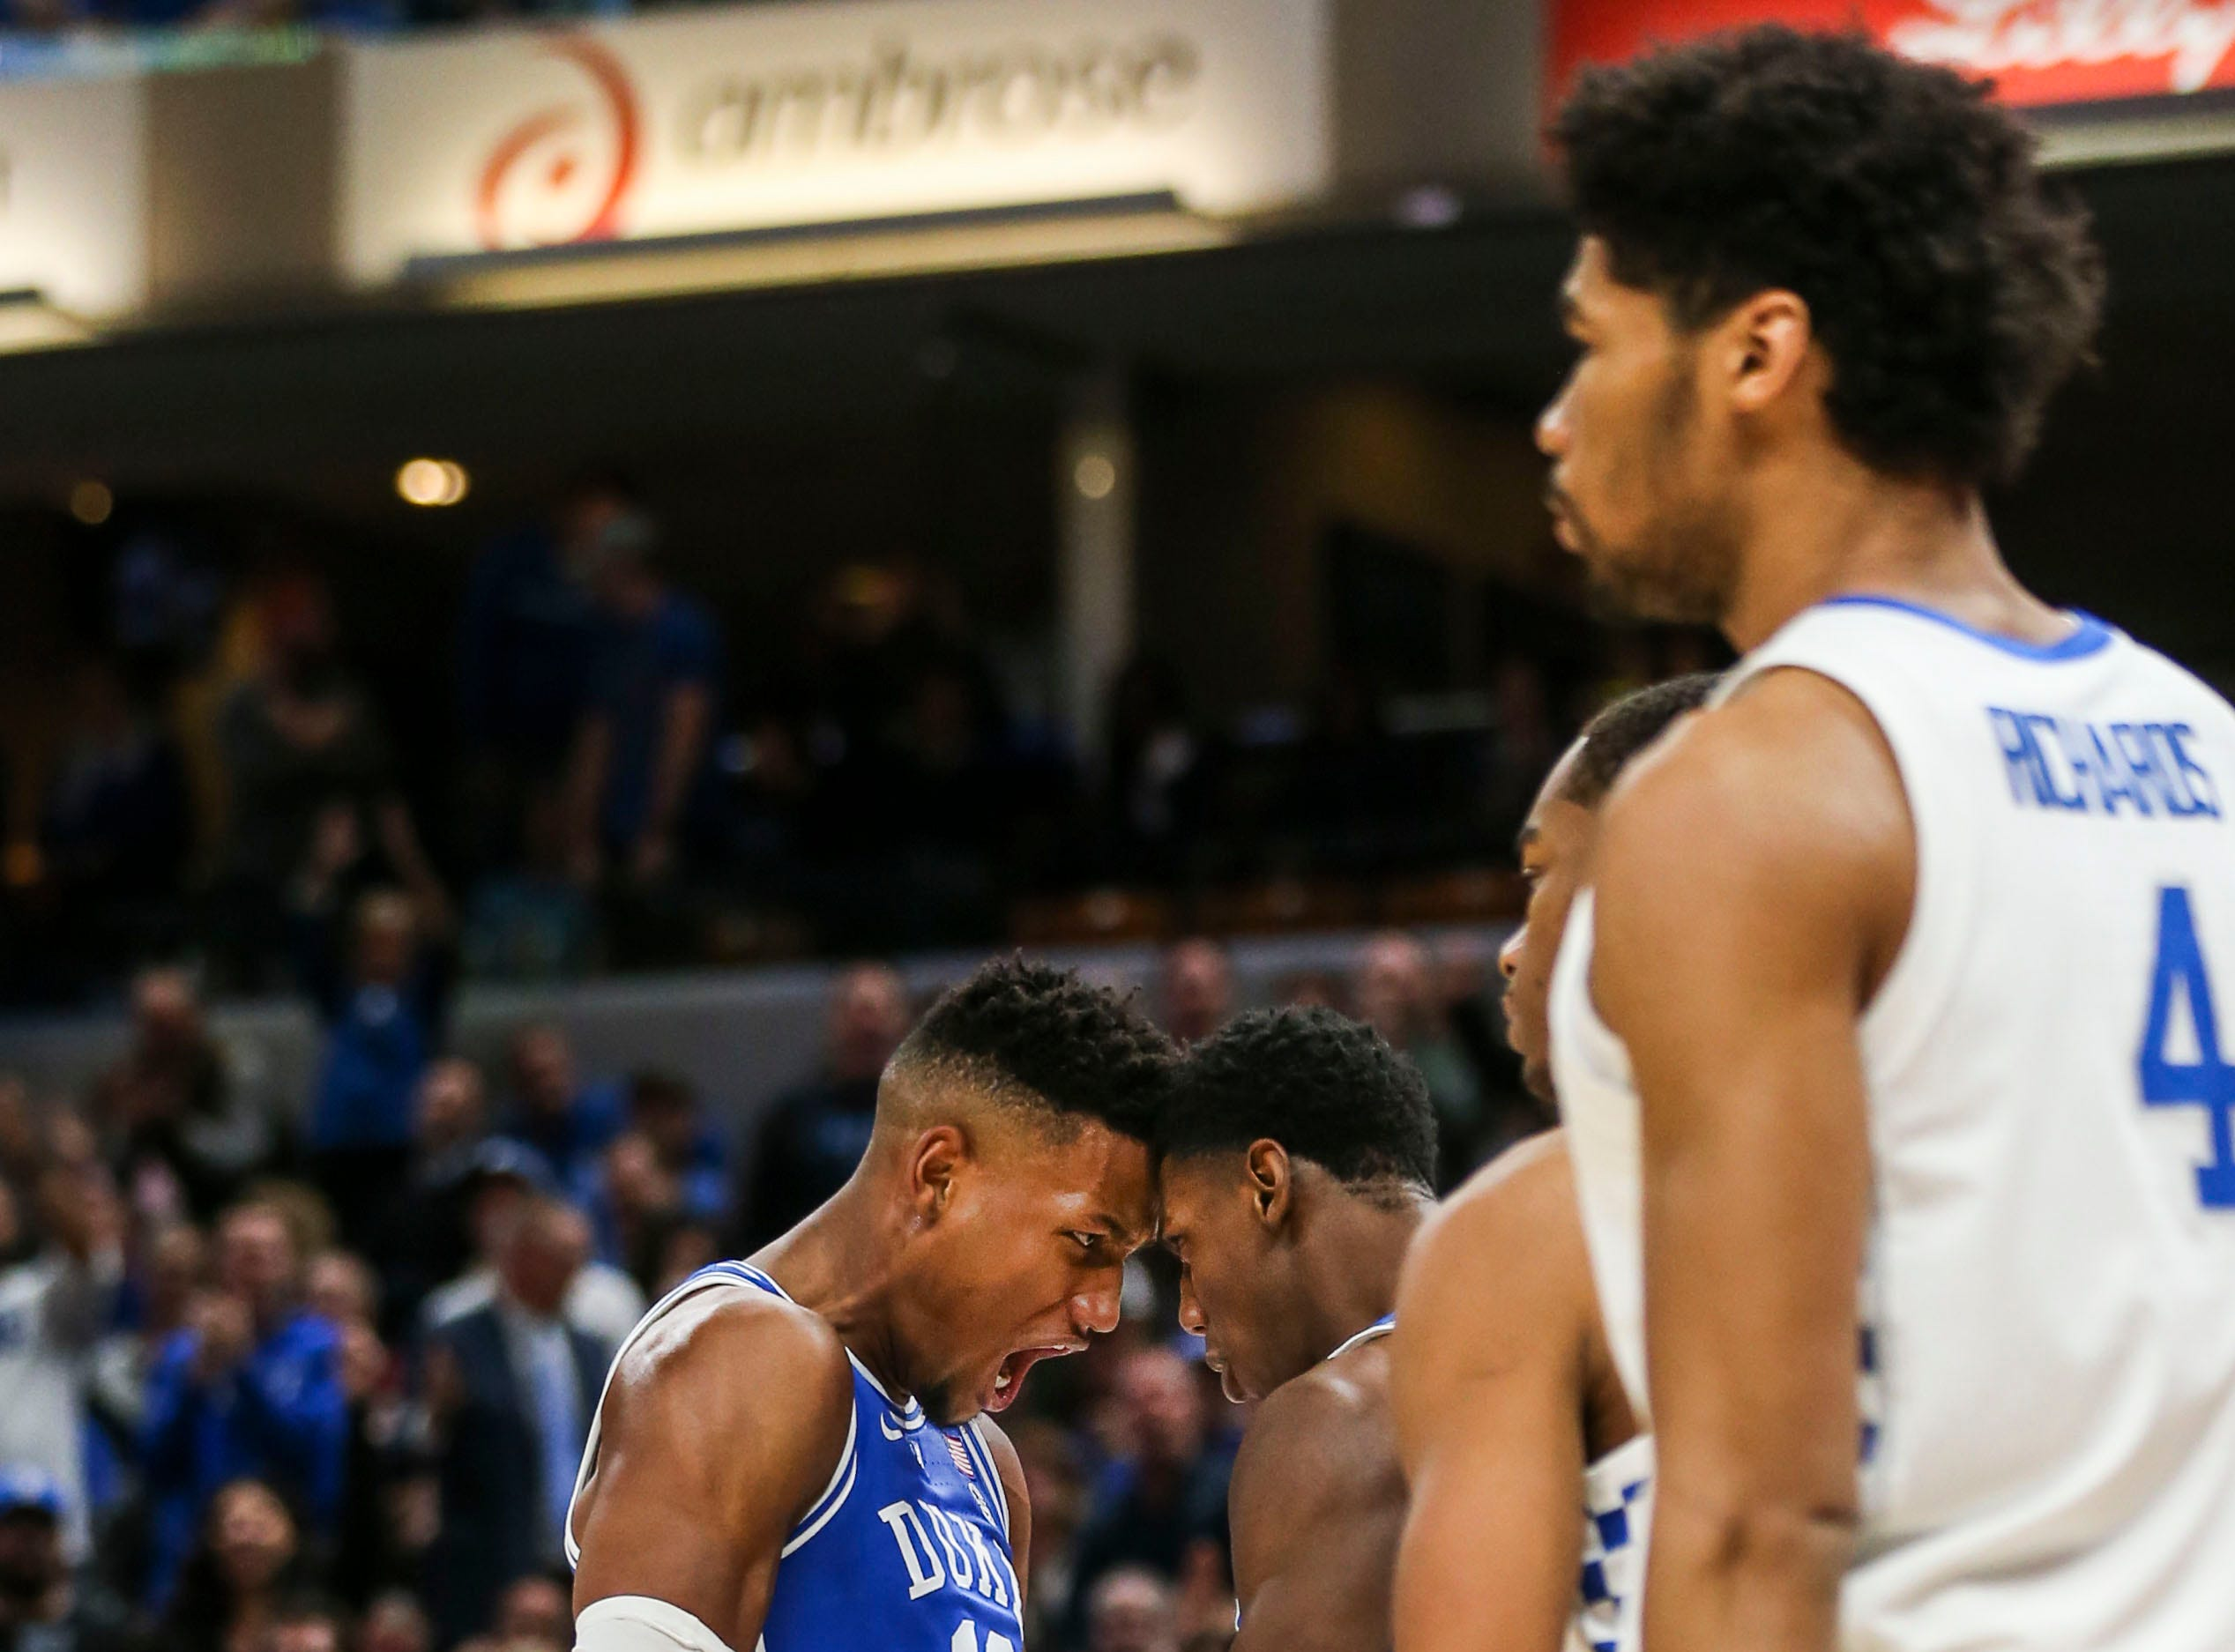 Duke's Javin Delaurier, left, celebrates with R.J. Barrett as the Blue Devils cruised past Kentucky 118-84 in the Champions Classic Tuesday night. Nov. 6, 2018